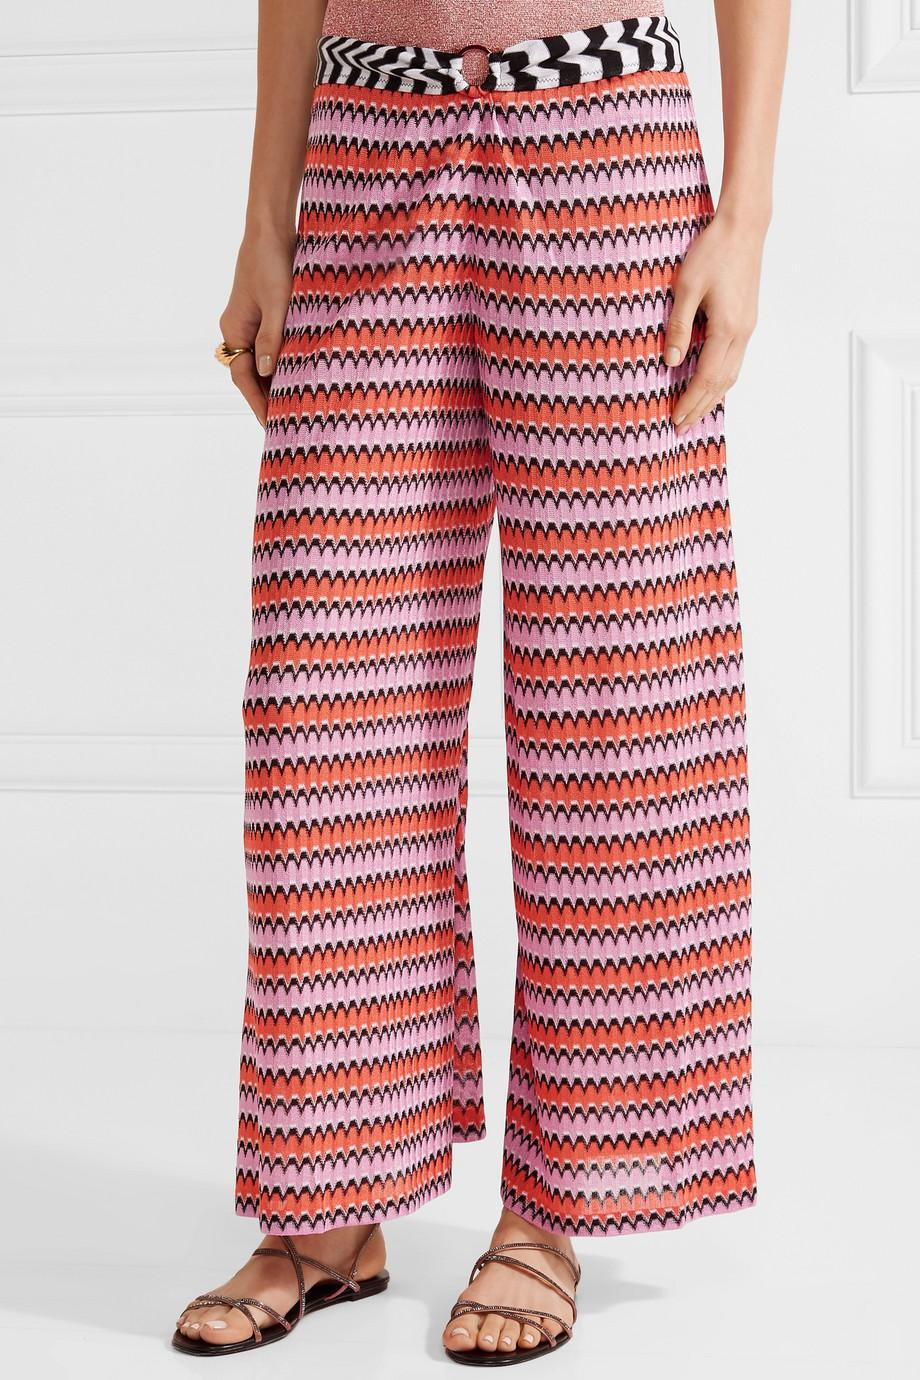 6b6ad9d89a97b Lyst - Missoni Mare Cropped Crochet-knit Wide-leg Pants in Pink